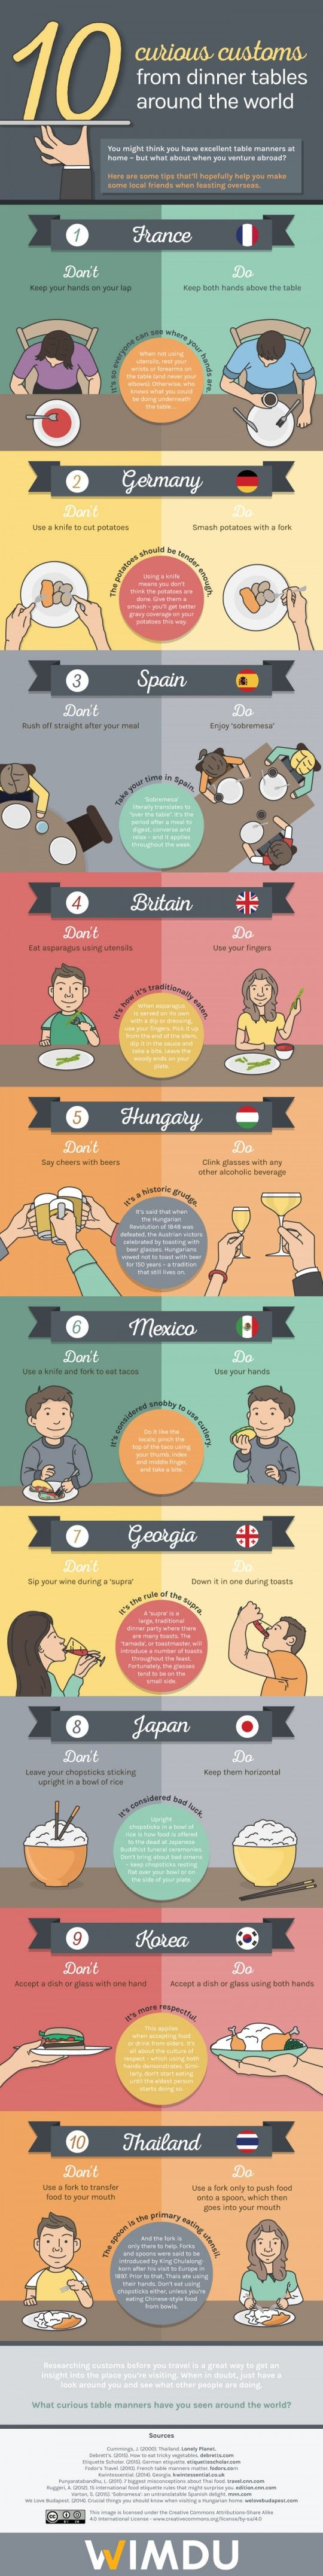 Here are three new additions to The Best Sites For Learning About The World's Different Cultures: The Cultural Differences Between East and West, as Told in Pictograms is from Slate. Where Children...